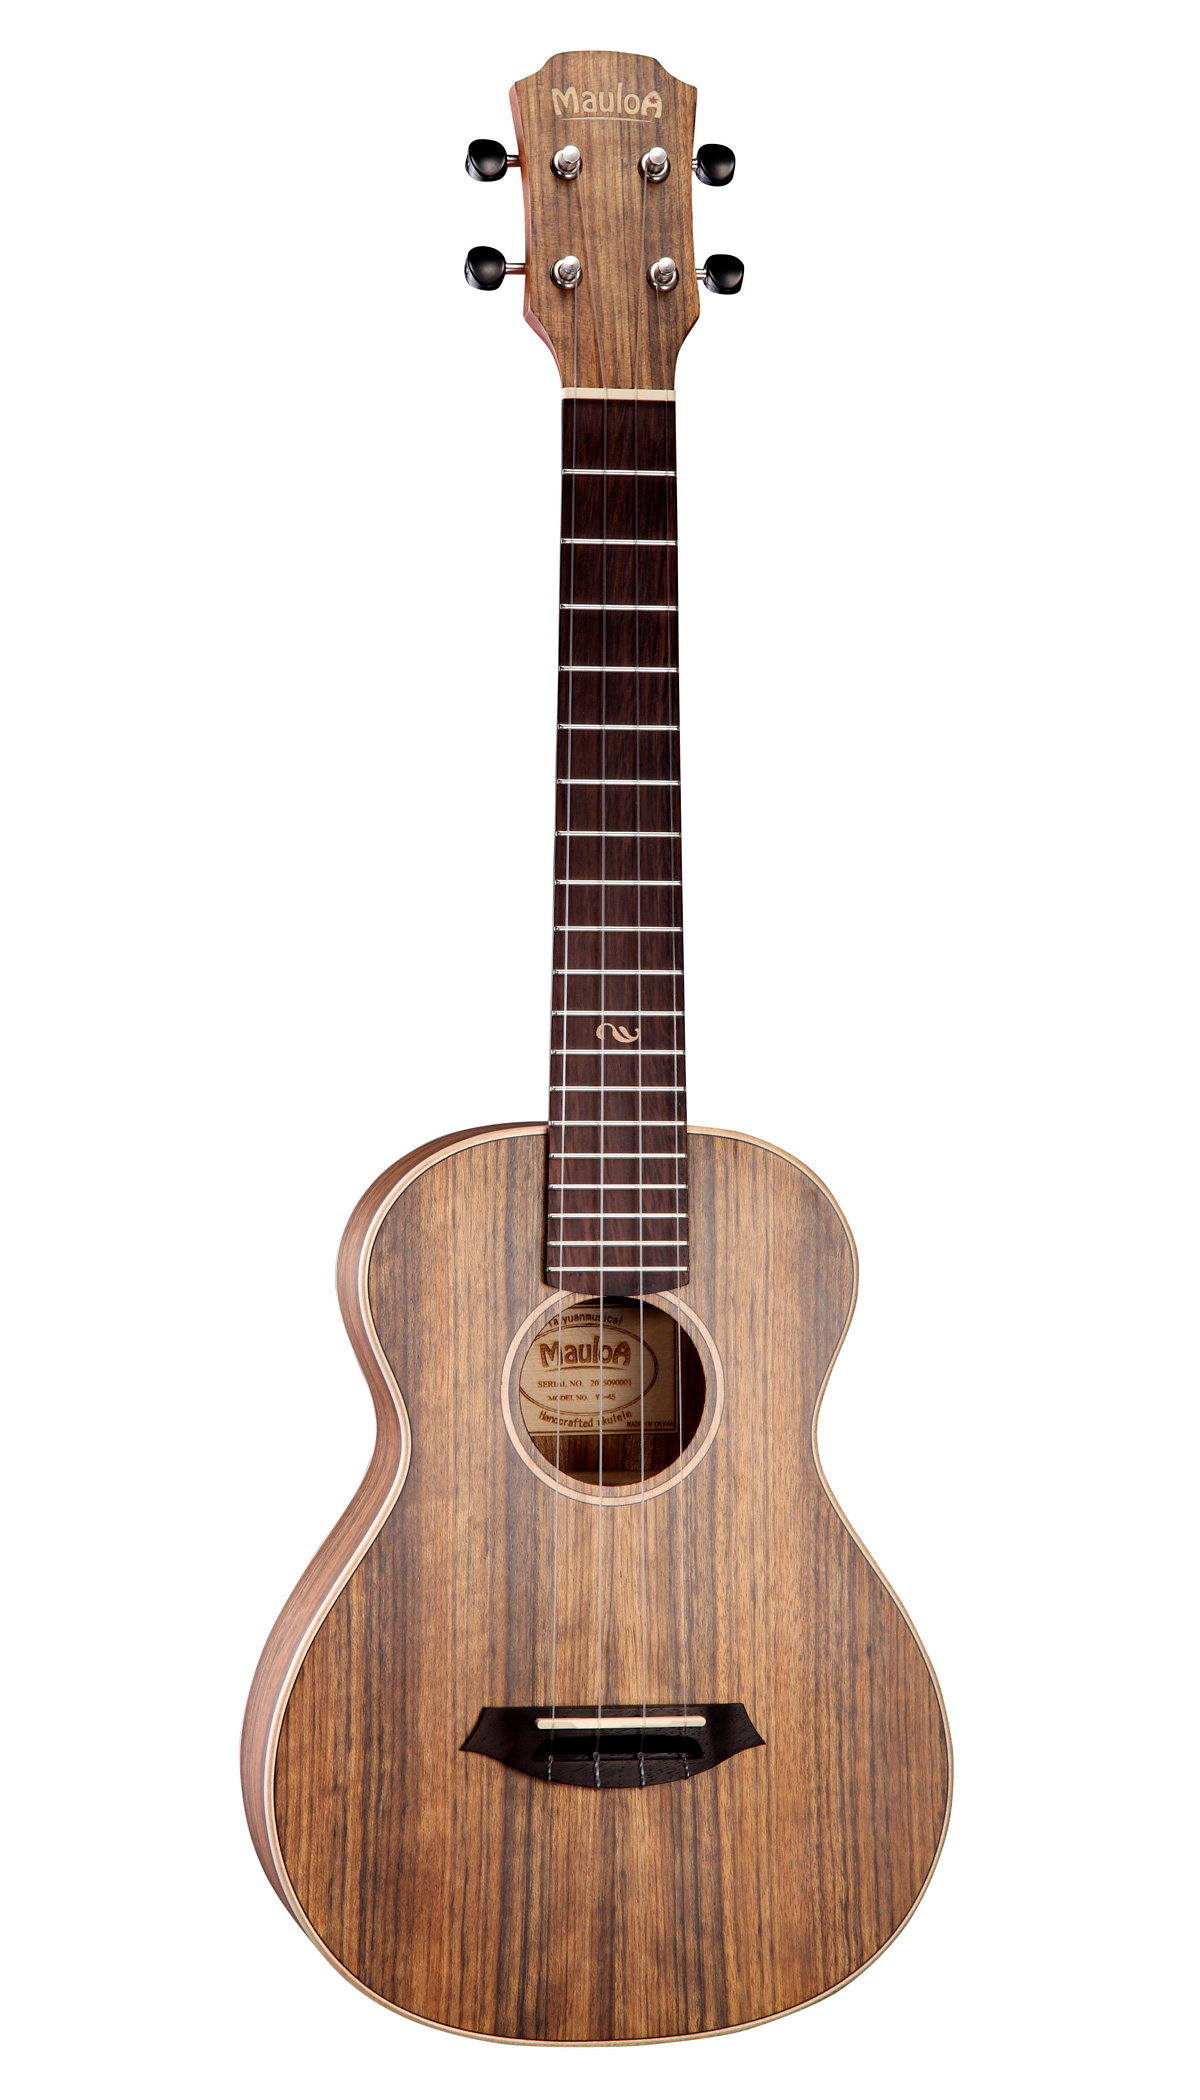 Top Solid Walnut,Walnut Plywood,Tenor Ukulele